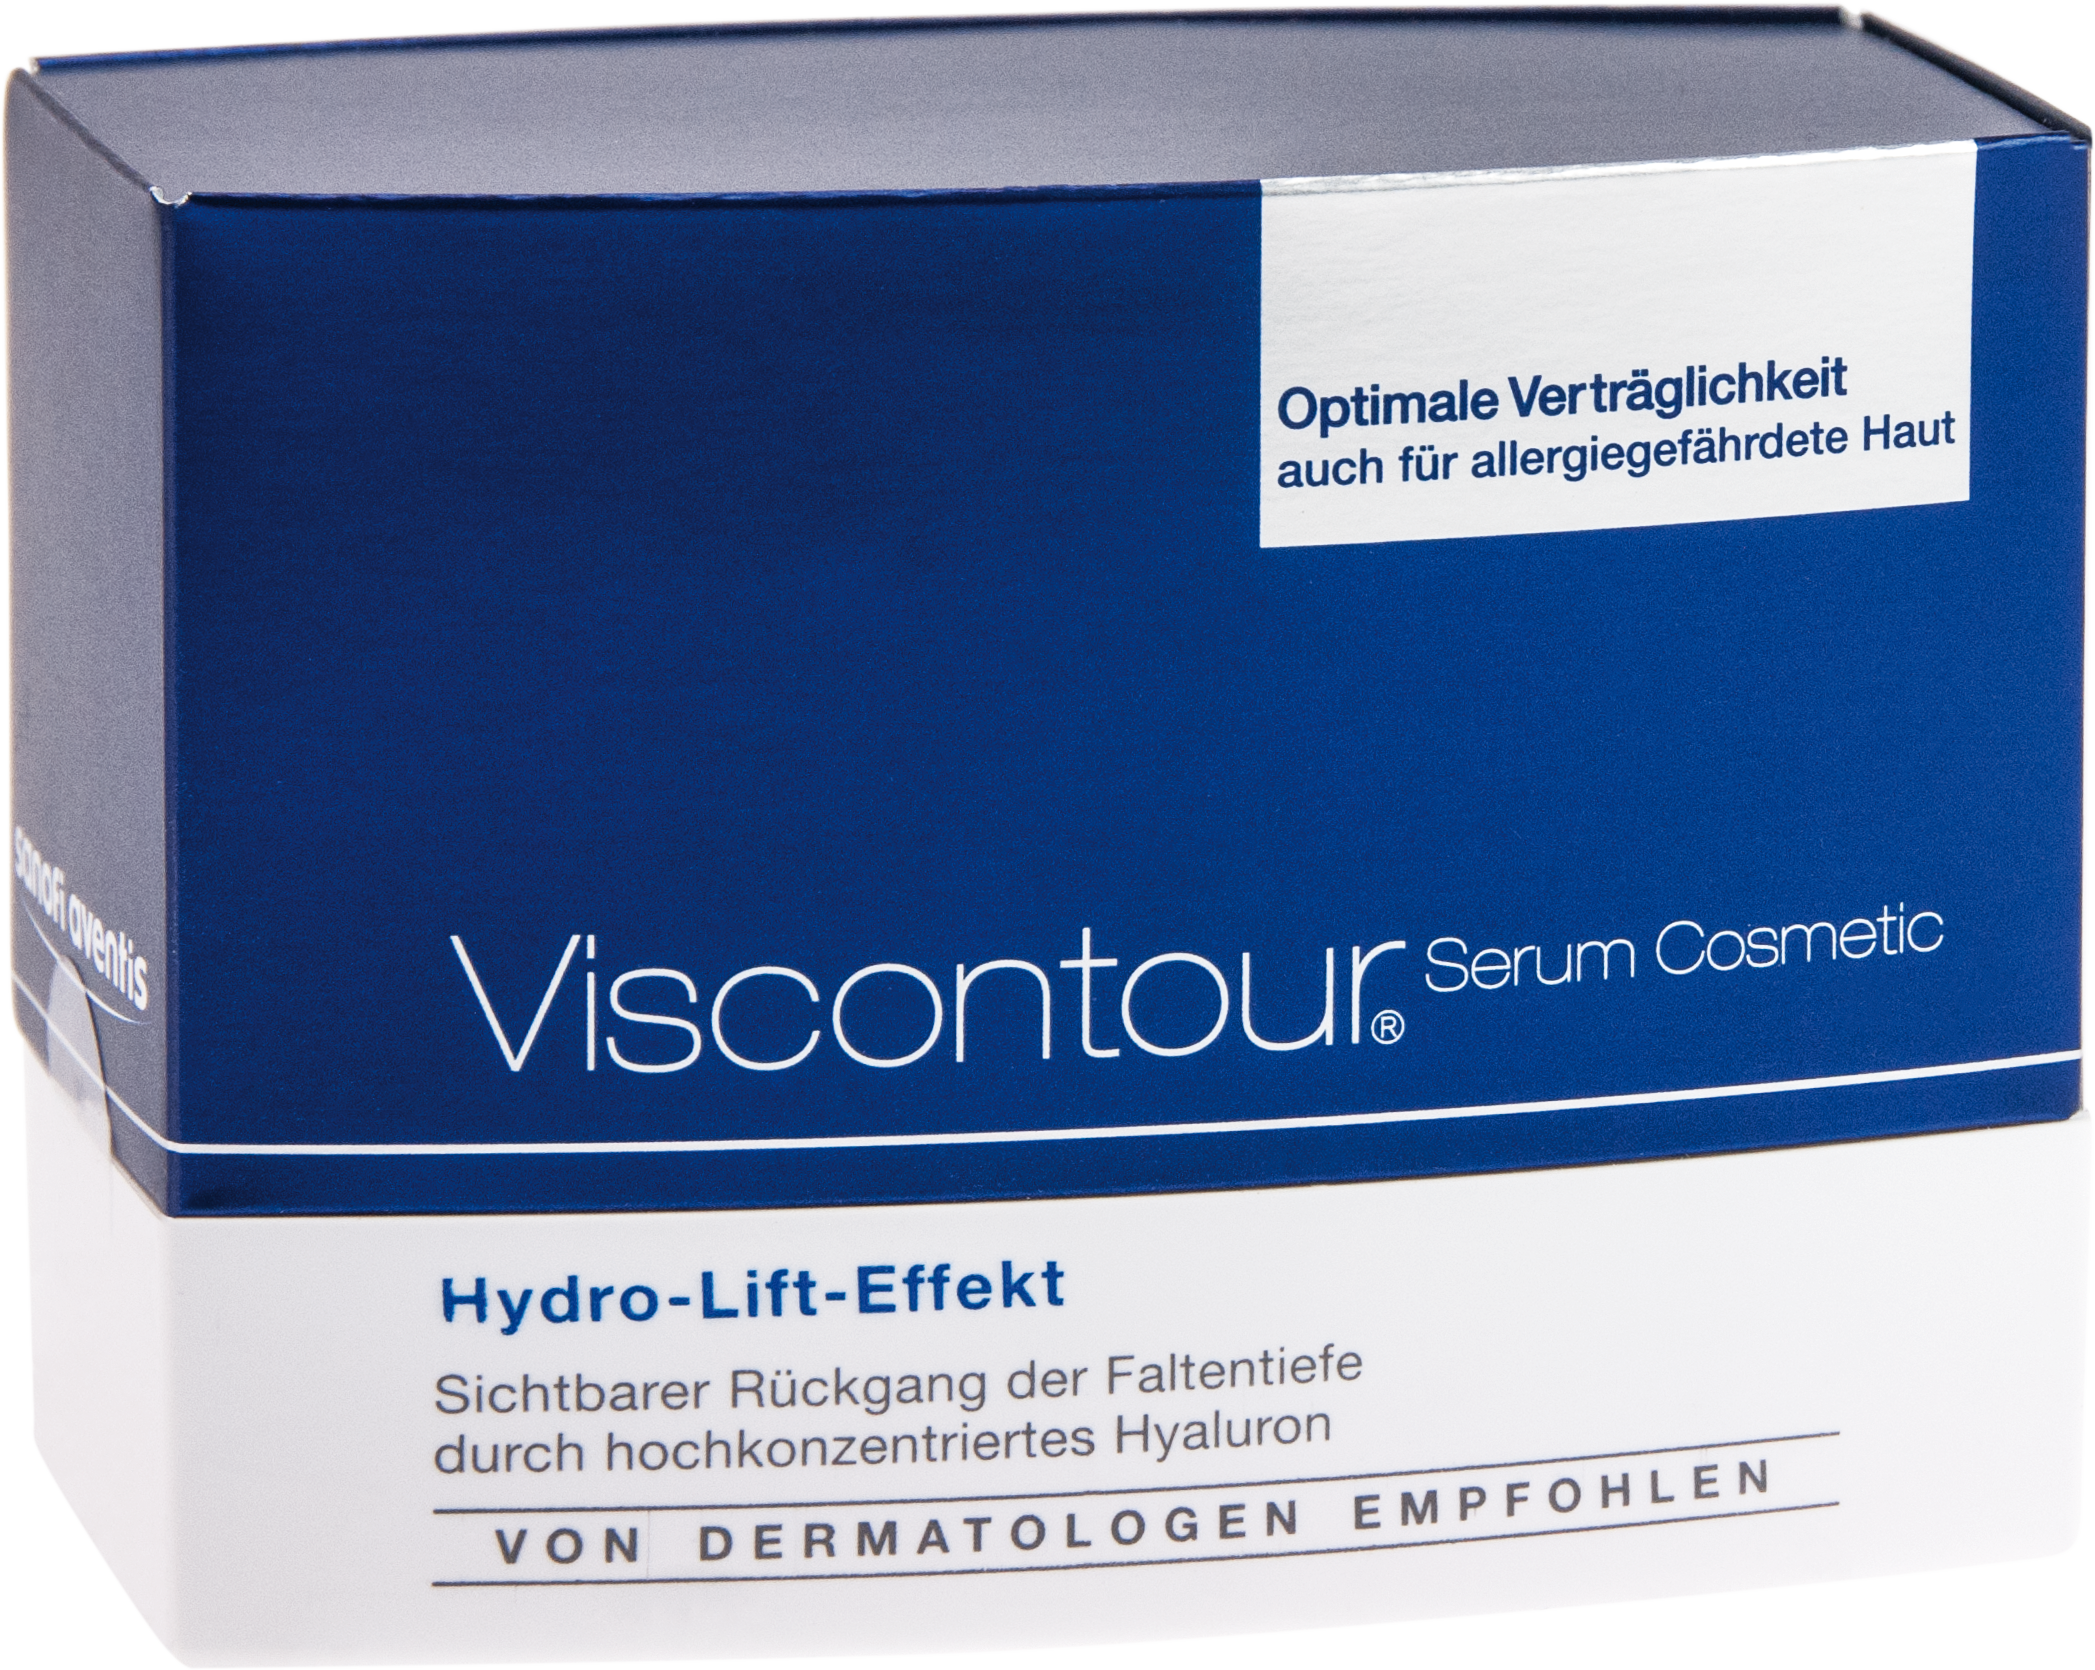 Viscontour Serum Cosmetic